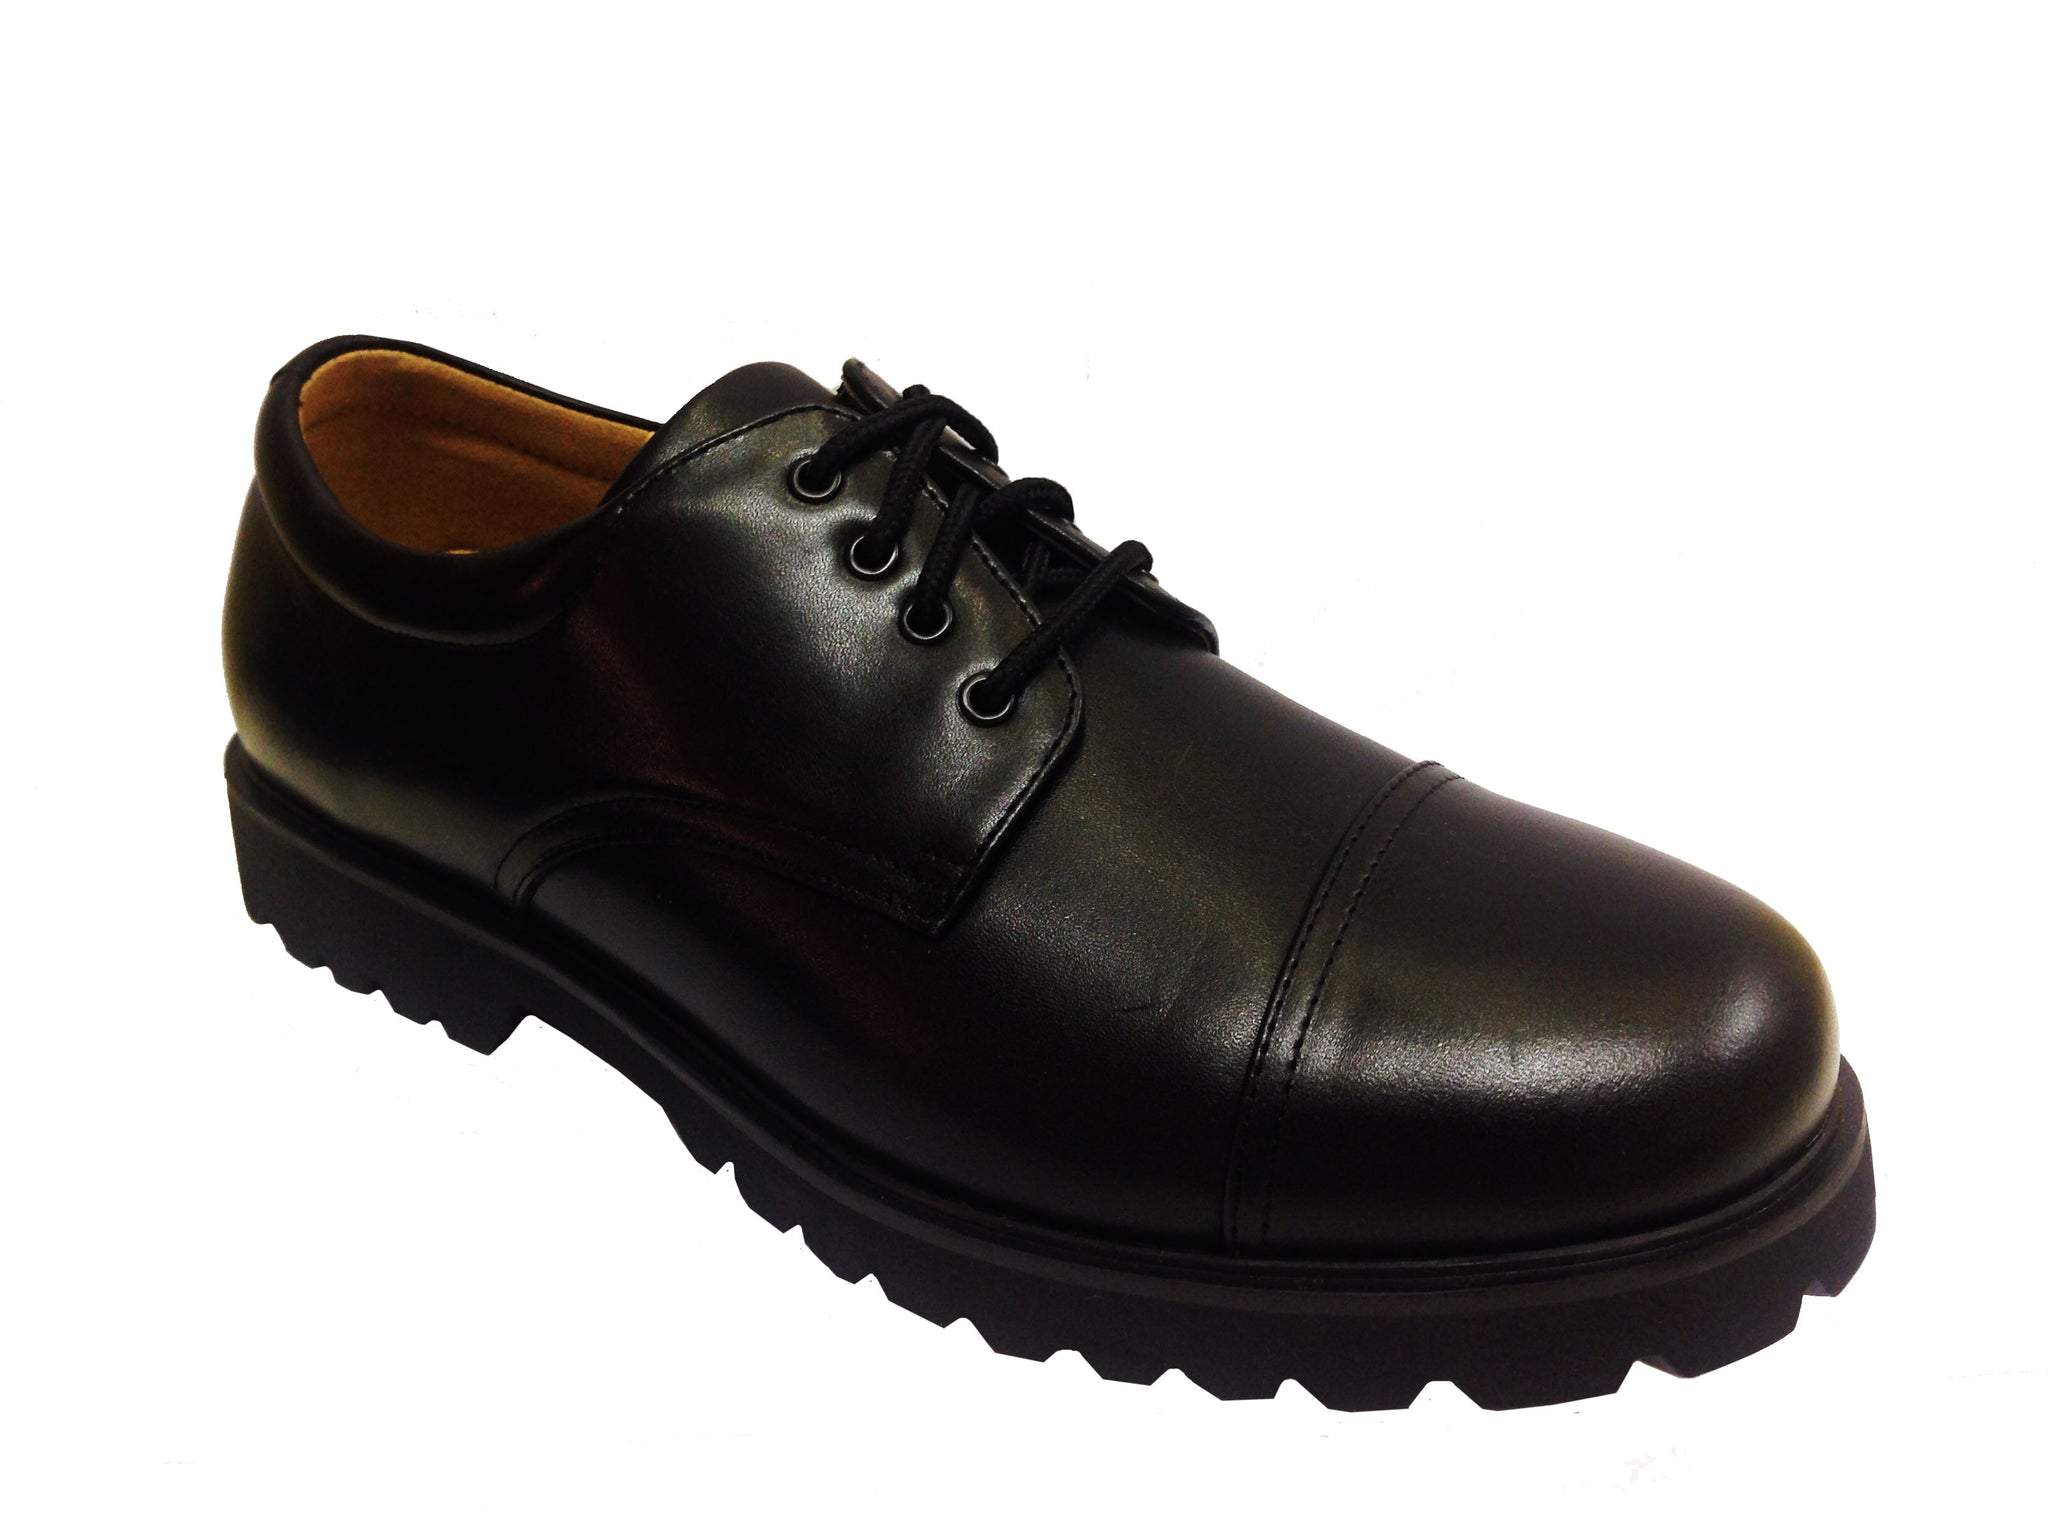 男裝舒適制服鞋 1209 Comfort Uniform Shoes for male